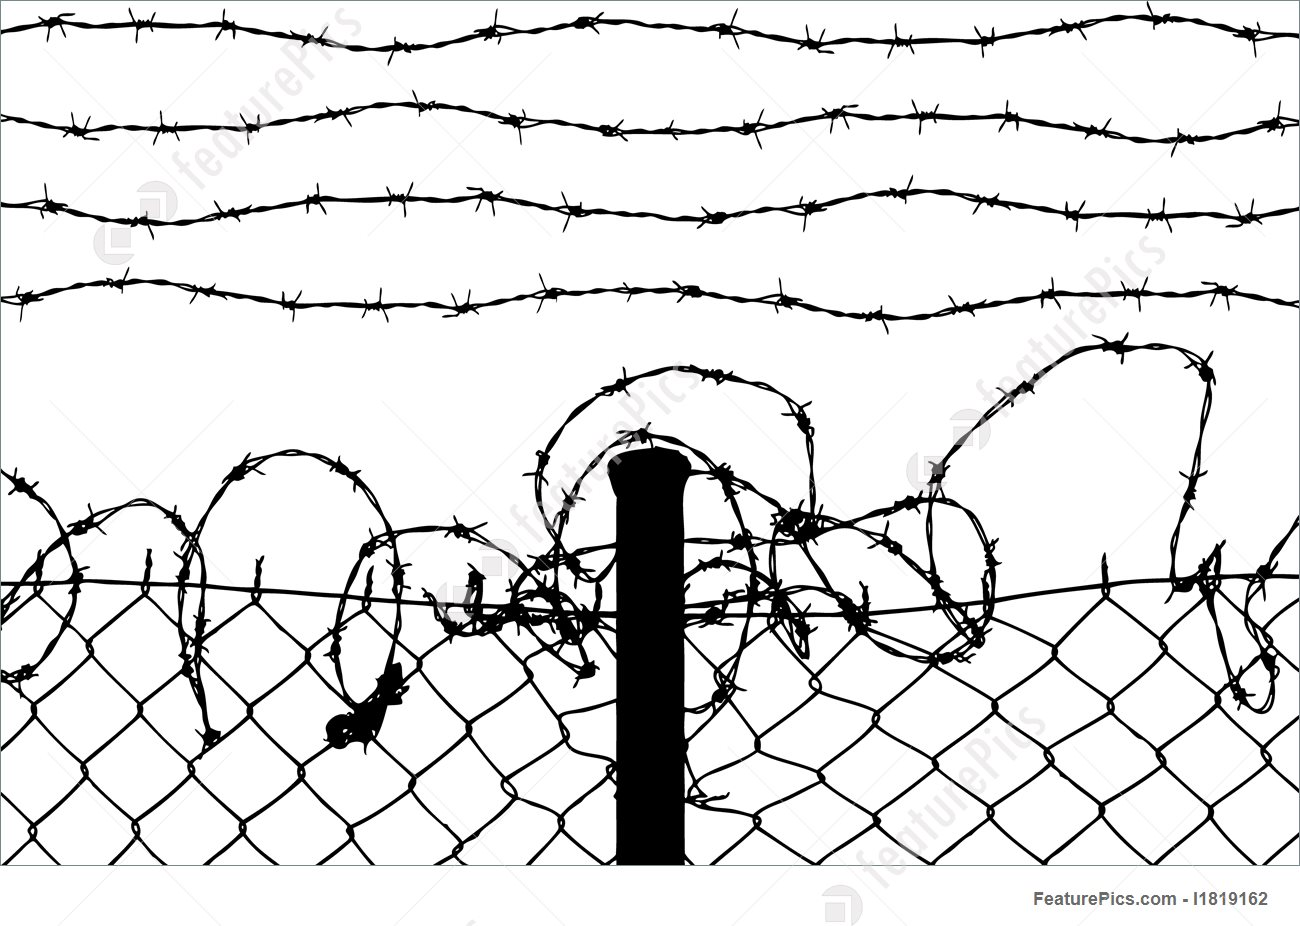 1300x926 Wired Fence With Barbed Wires Illustration